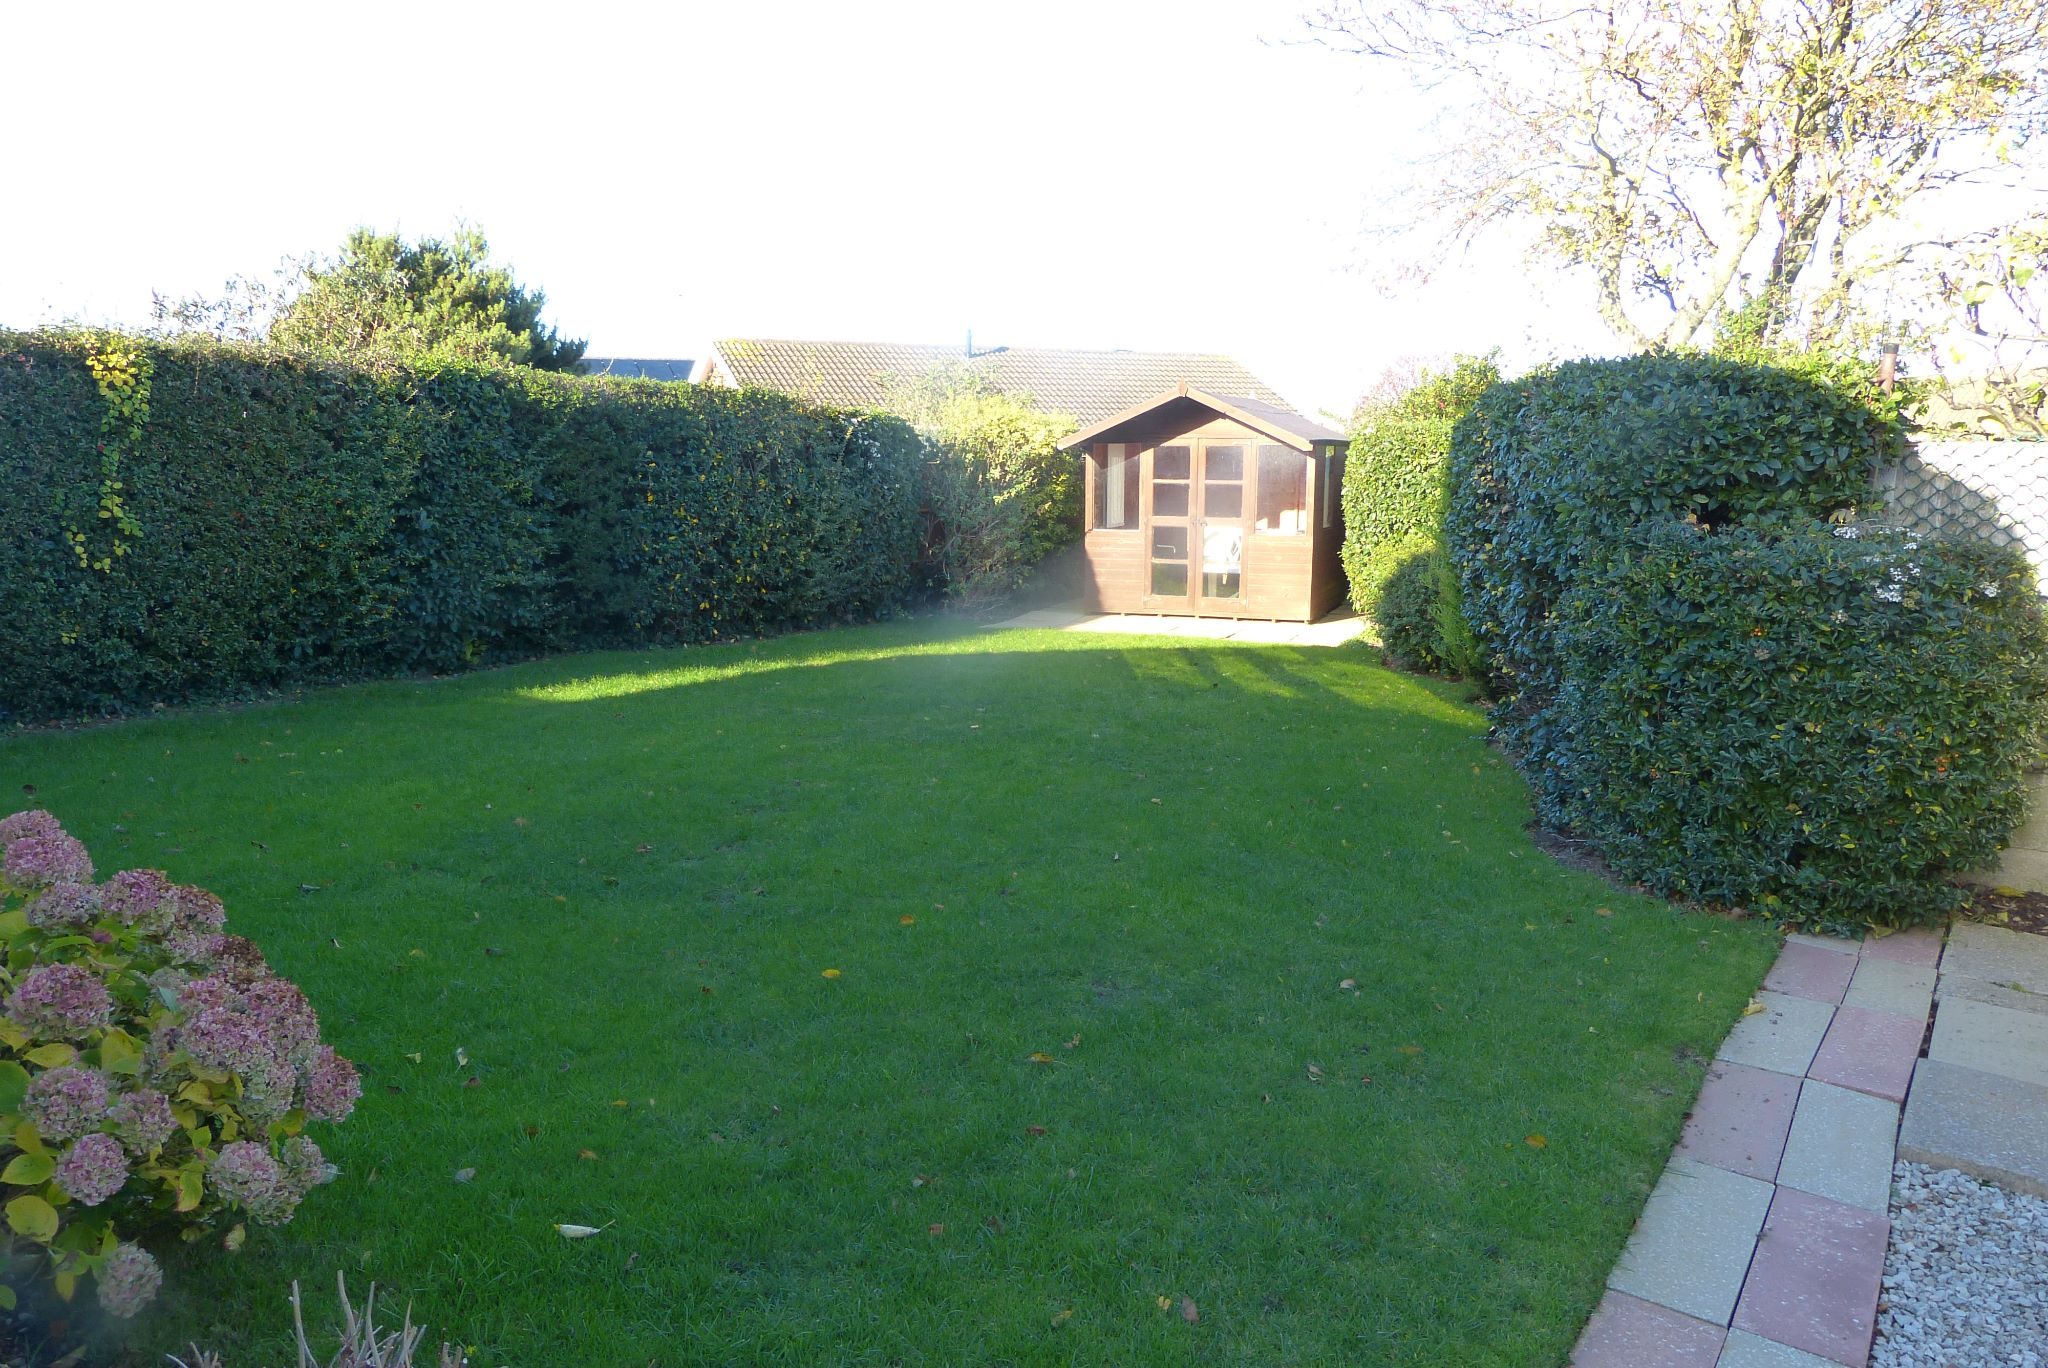 3 bedroom detached bungalow SSTC in Abergele - Photograph 10